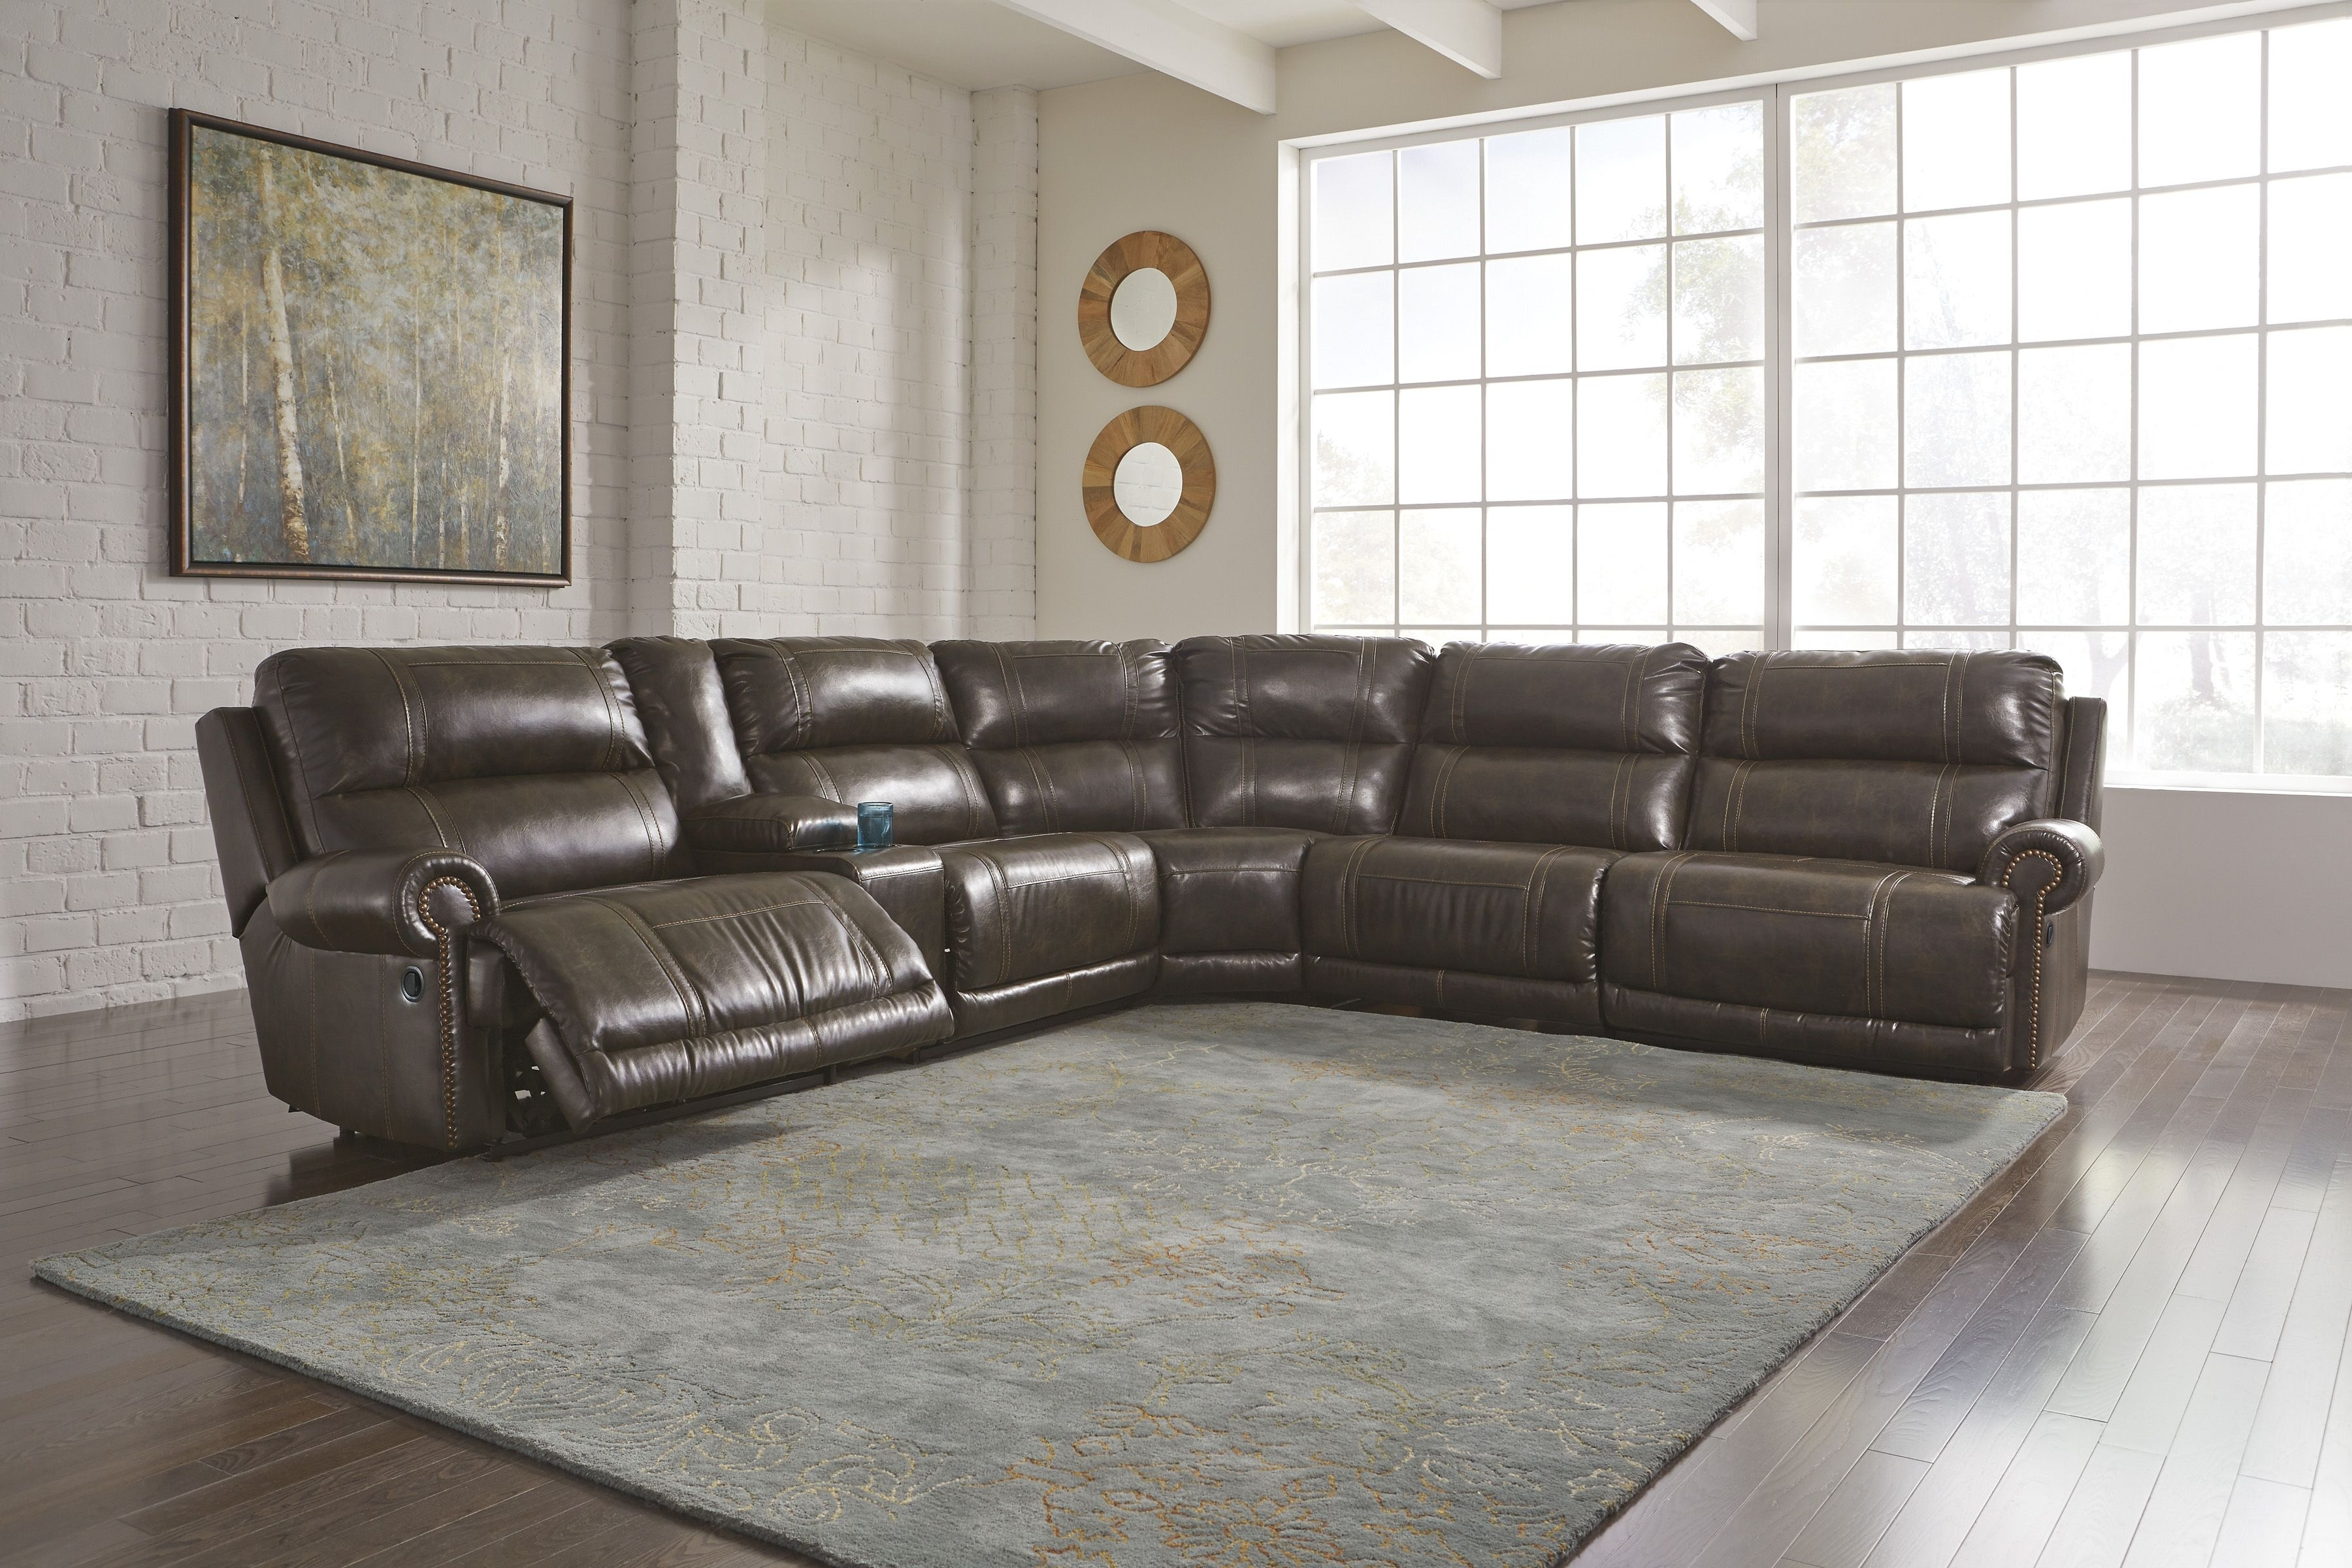 Dak – Antique 7 Piece Sectional   Living Rooms To Love   Pinterest Inside Blaine 4 Piece Sectionals (Image 7 of 25)